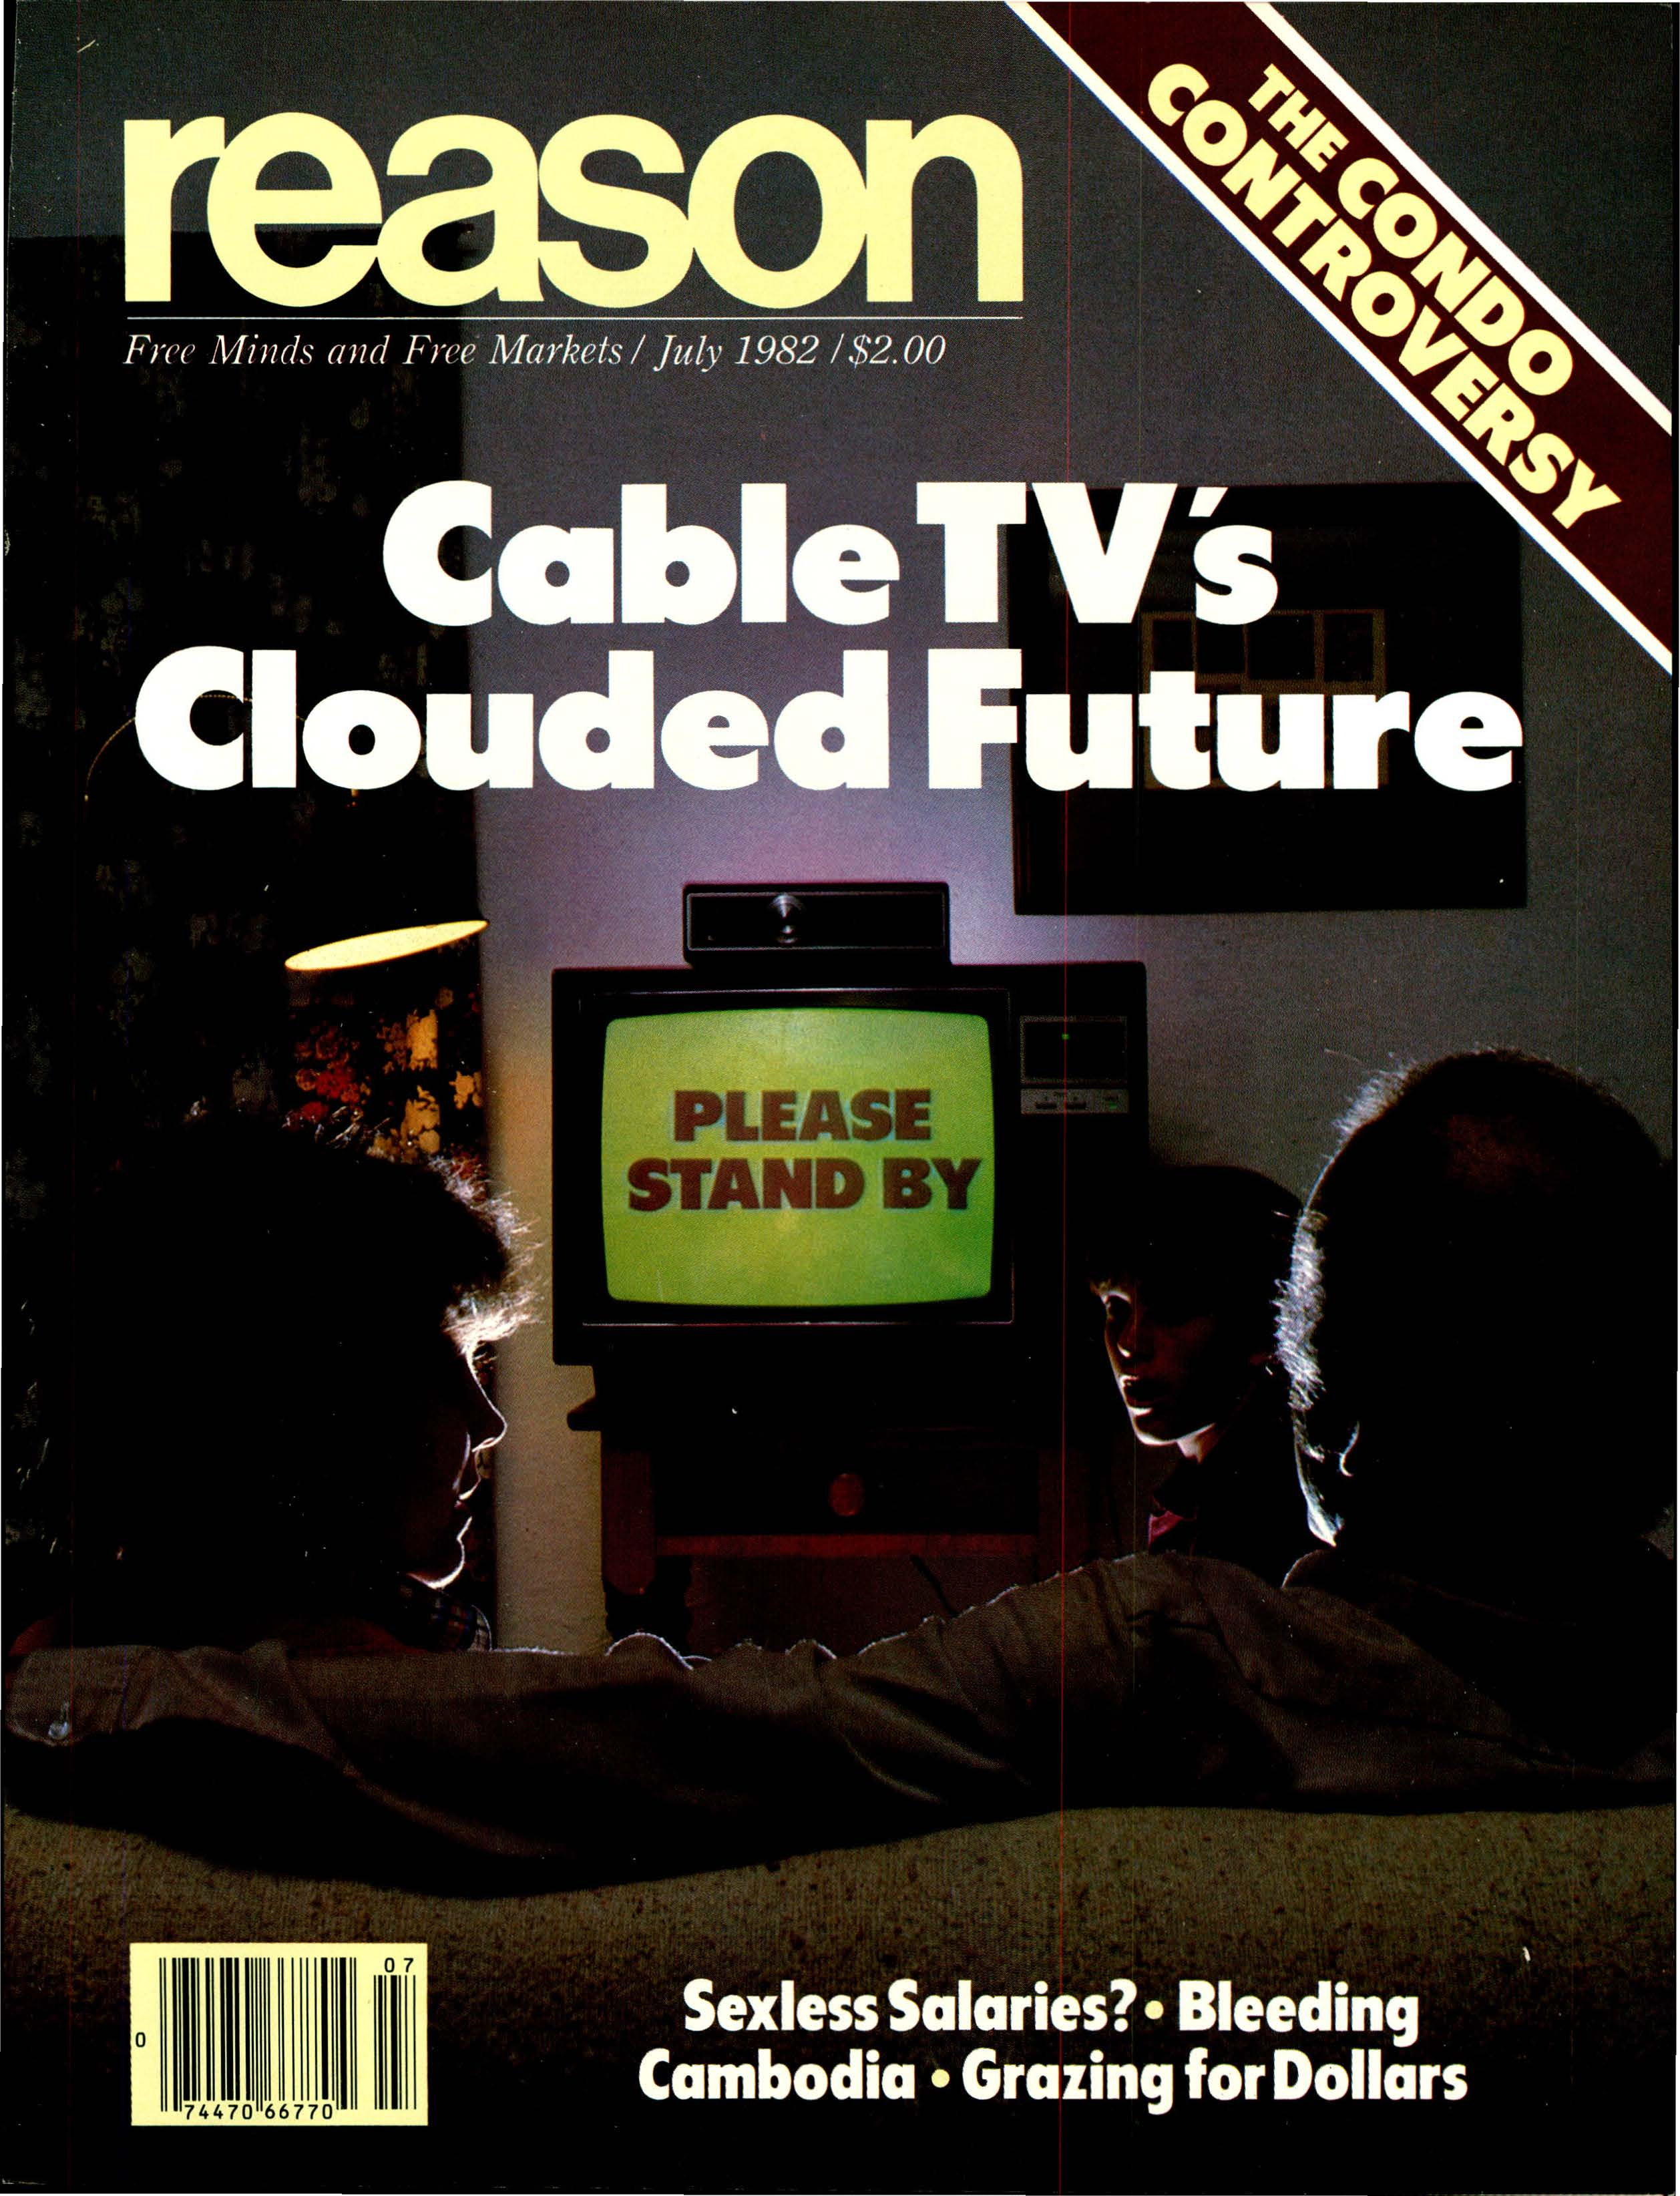 Reason Magazine, July 1982 cover image